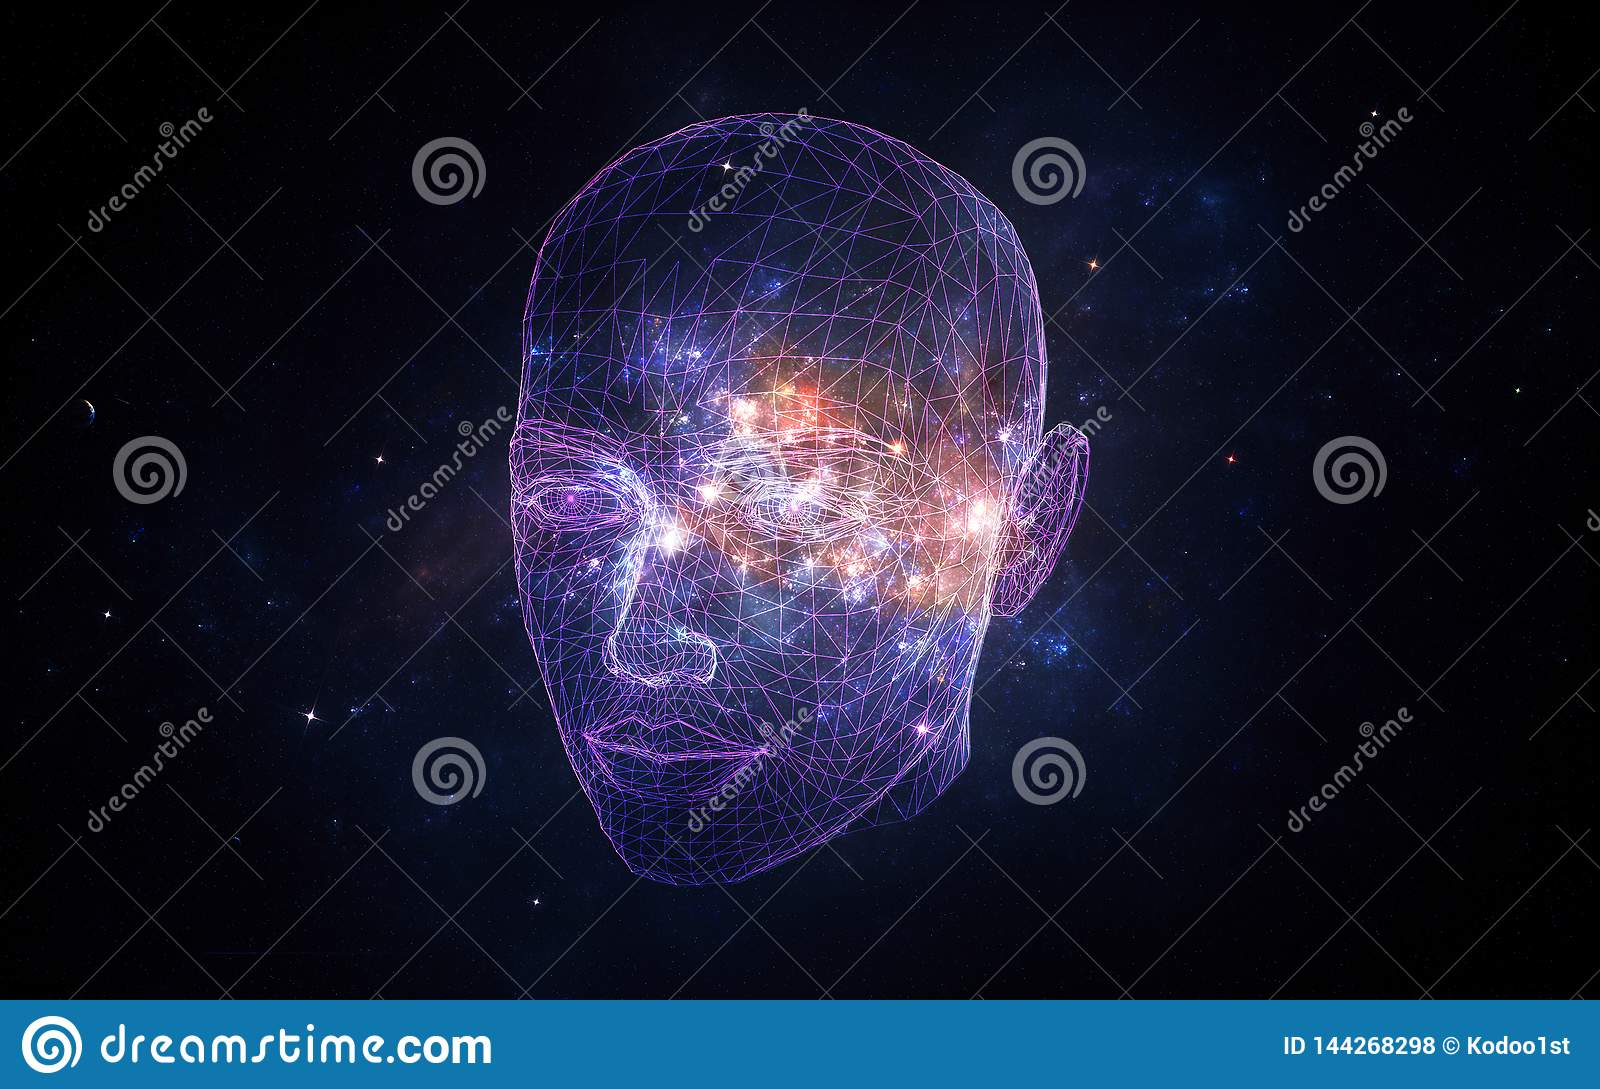 Abstract Artistic Artificial Intelligence Interface In A Nebula Background